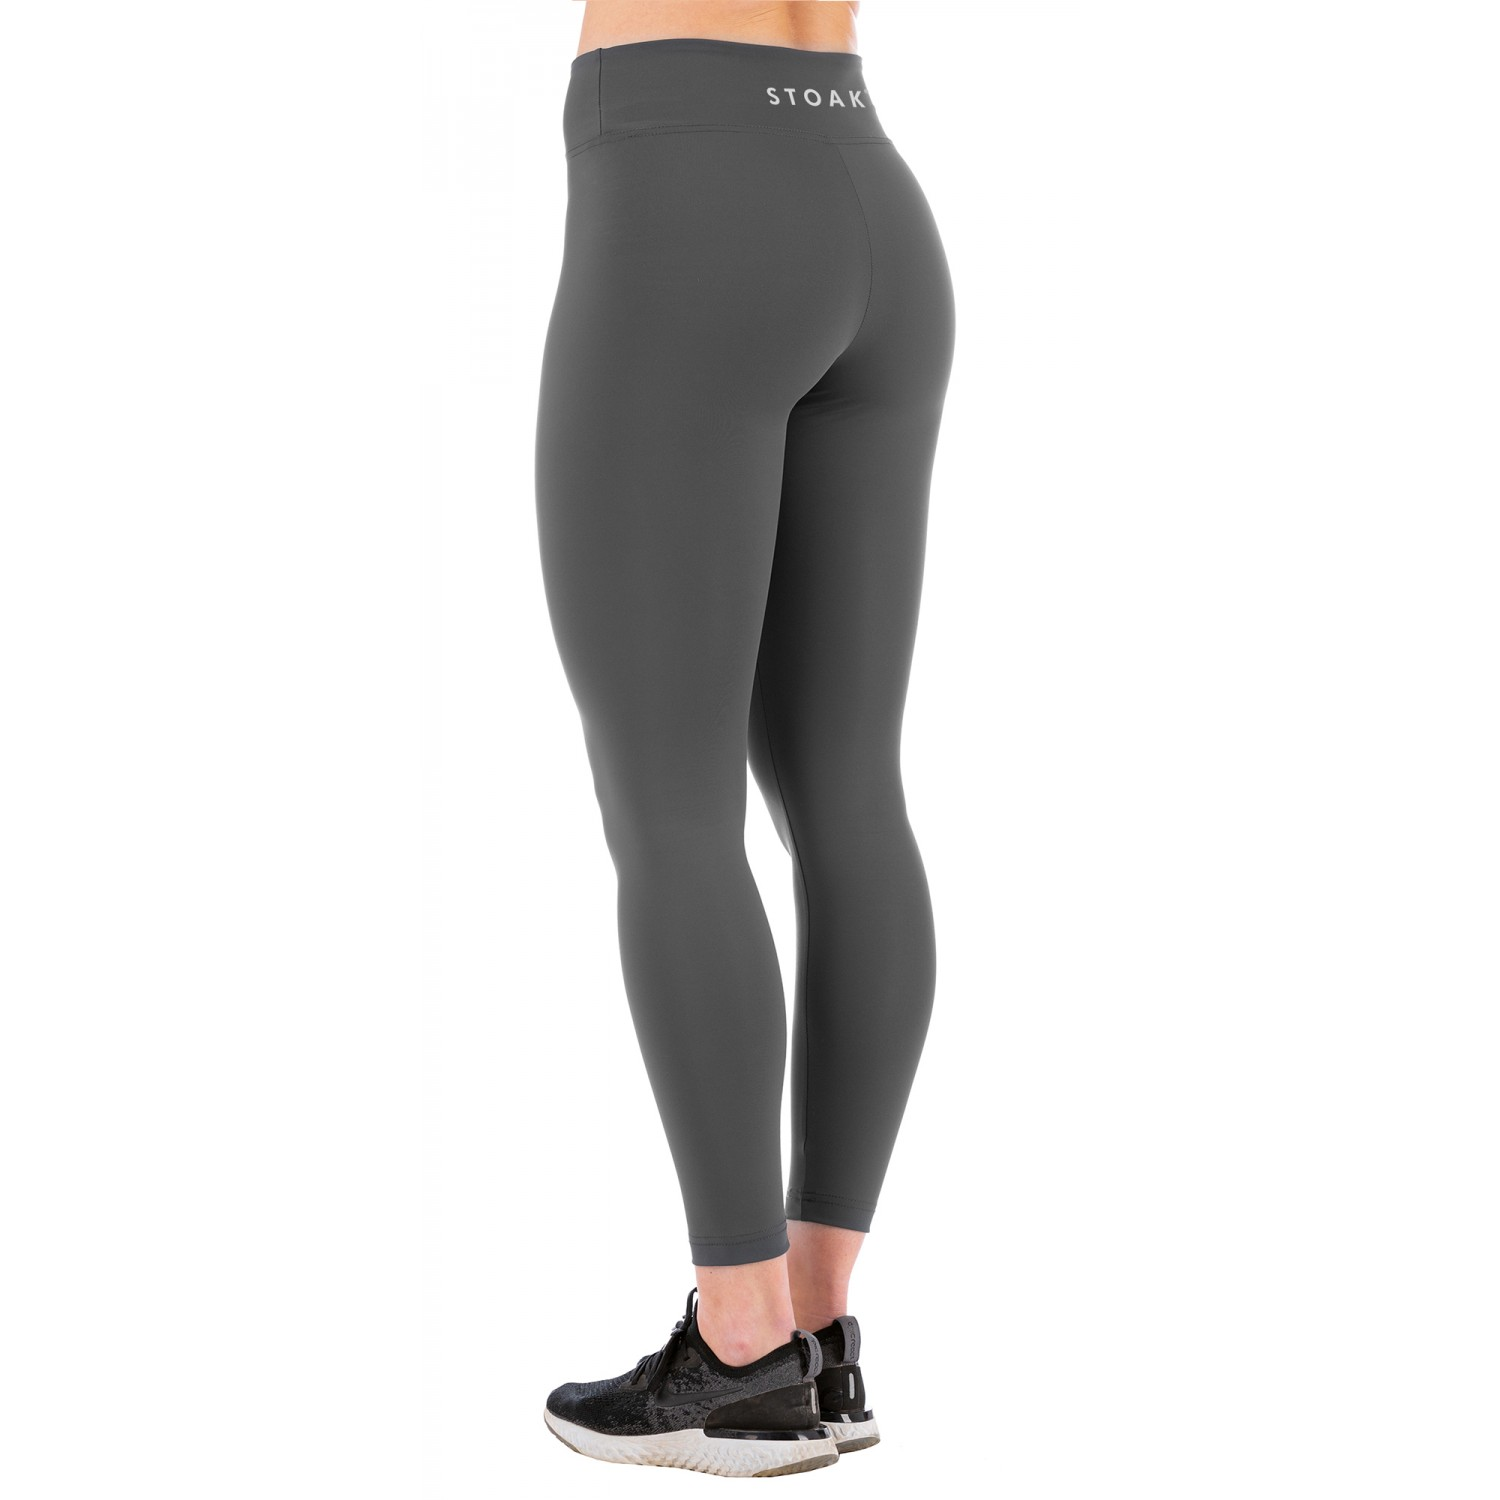 STOAK TITAN Performance Leggings